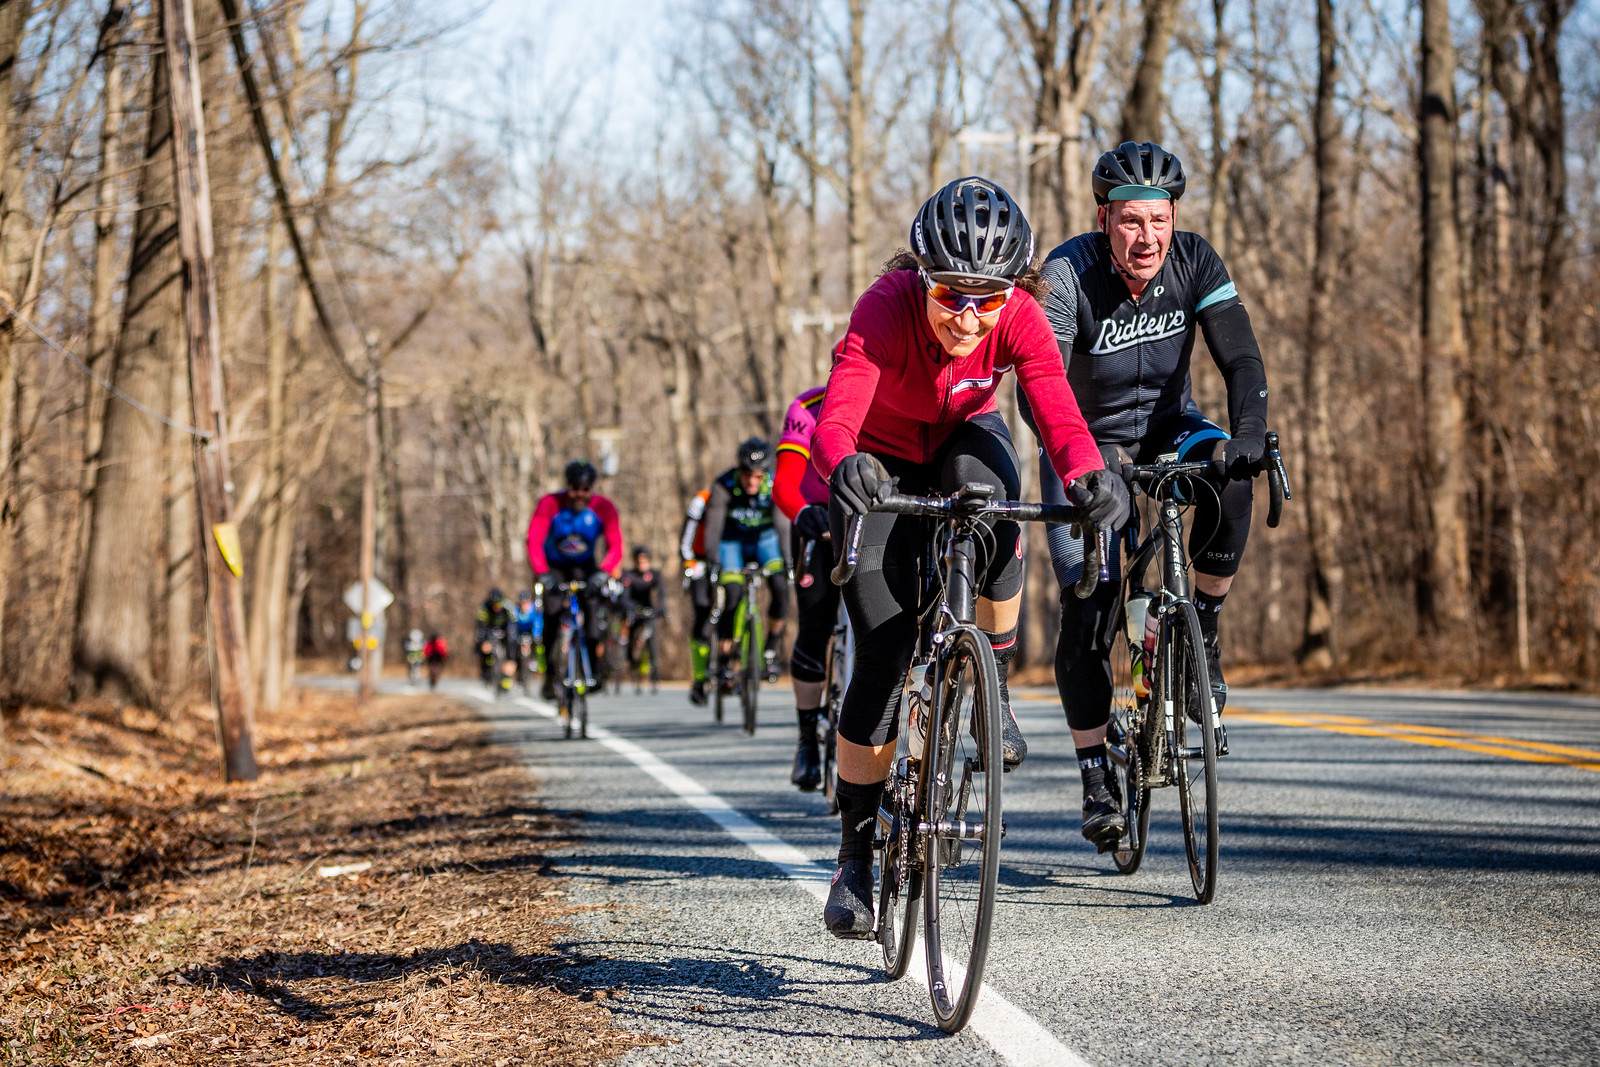 Atop one of the early climbs, riders were enjoying the perfect conditions.